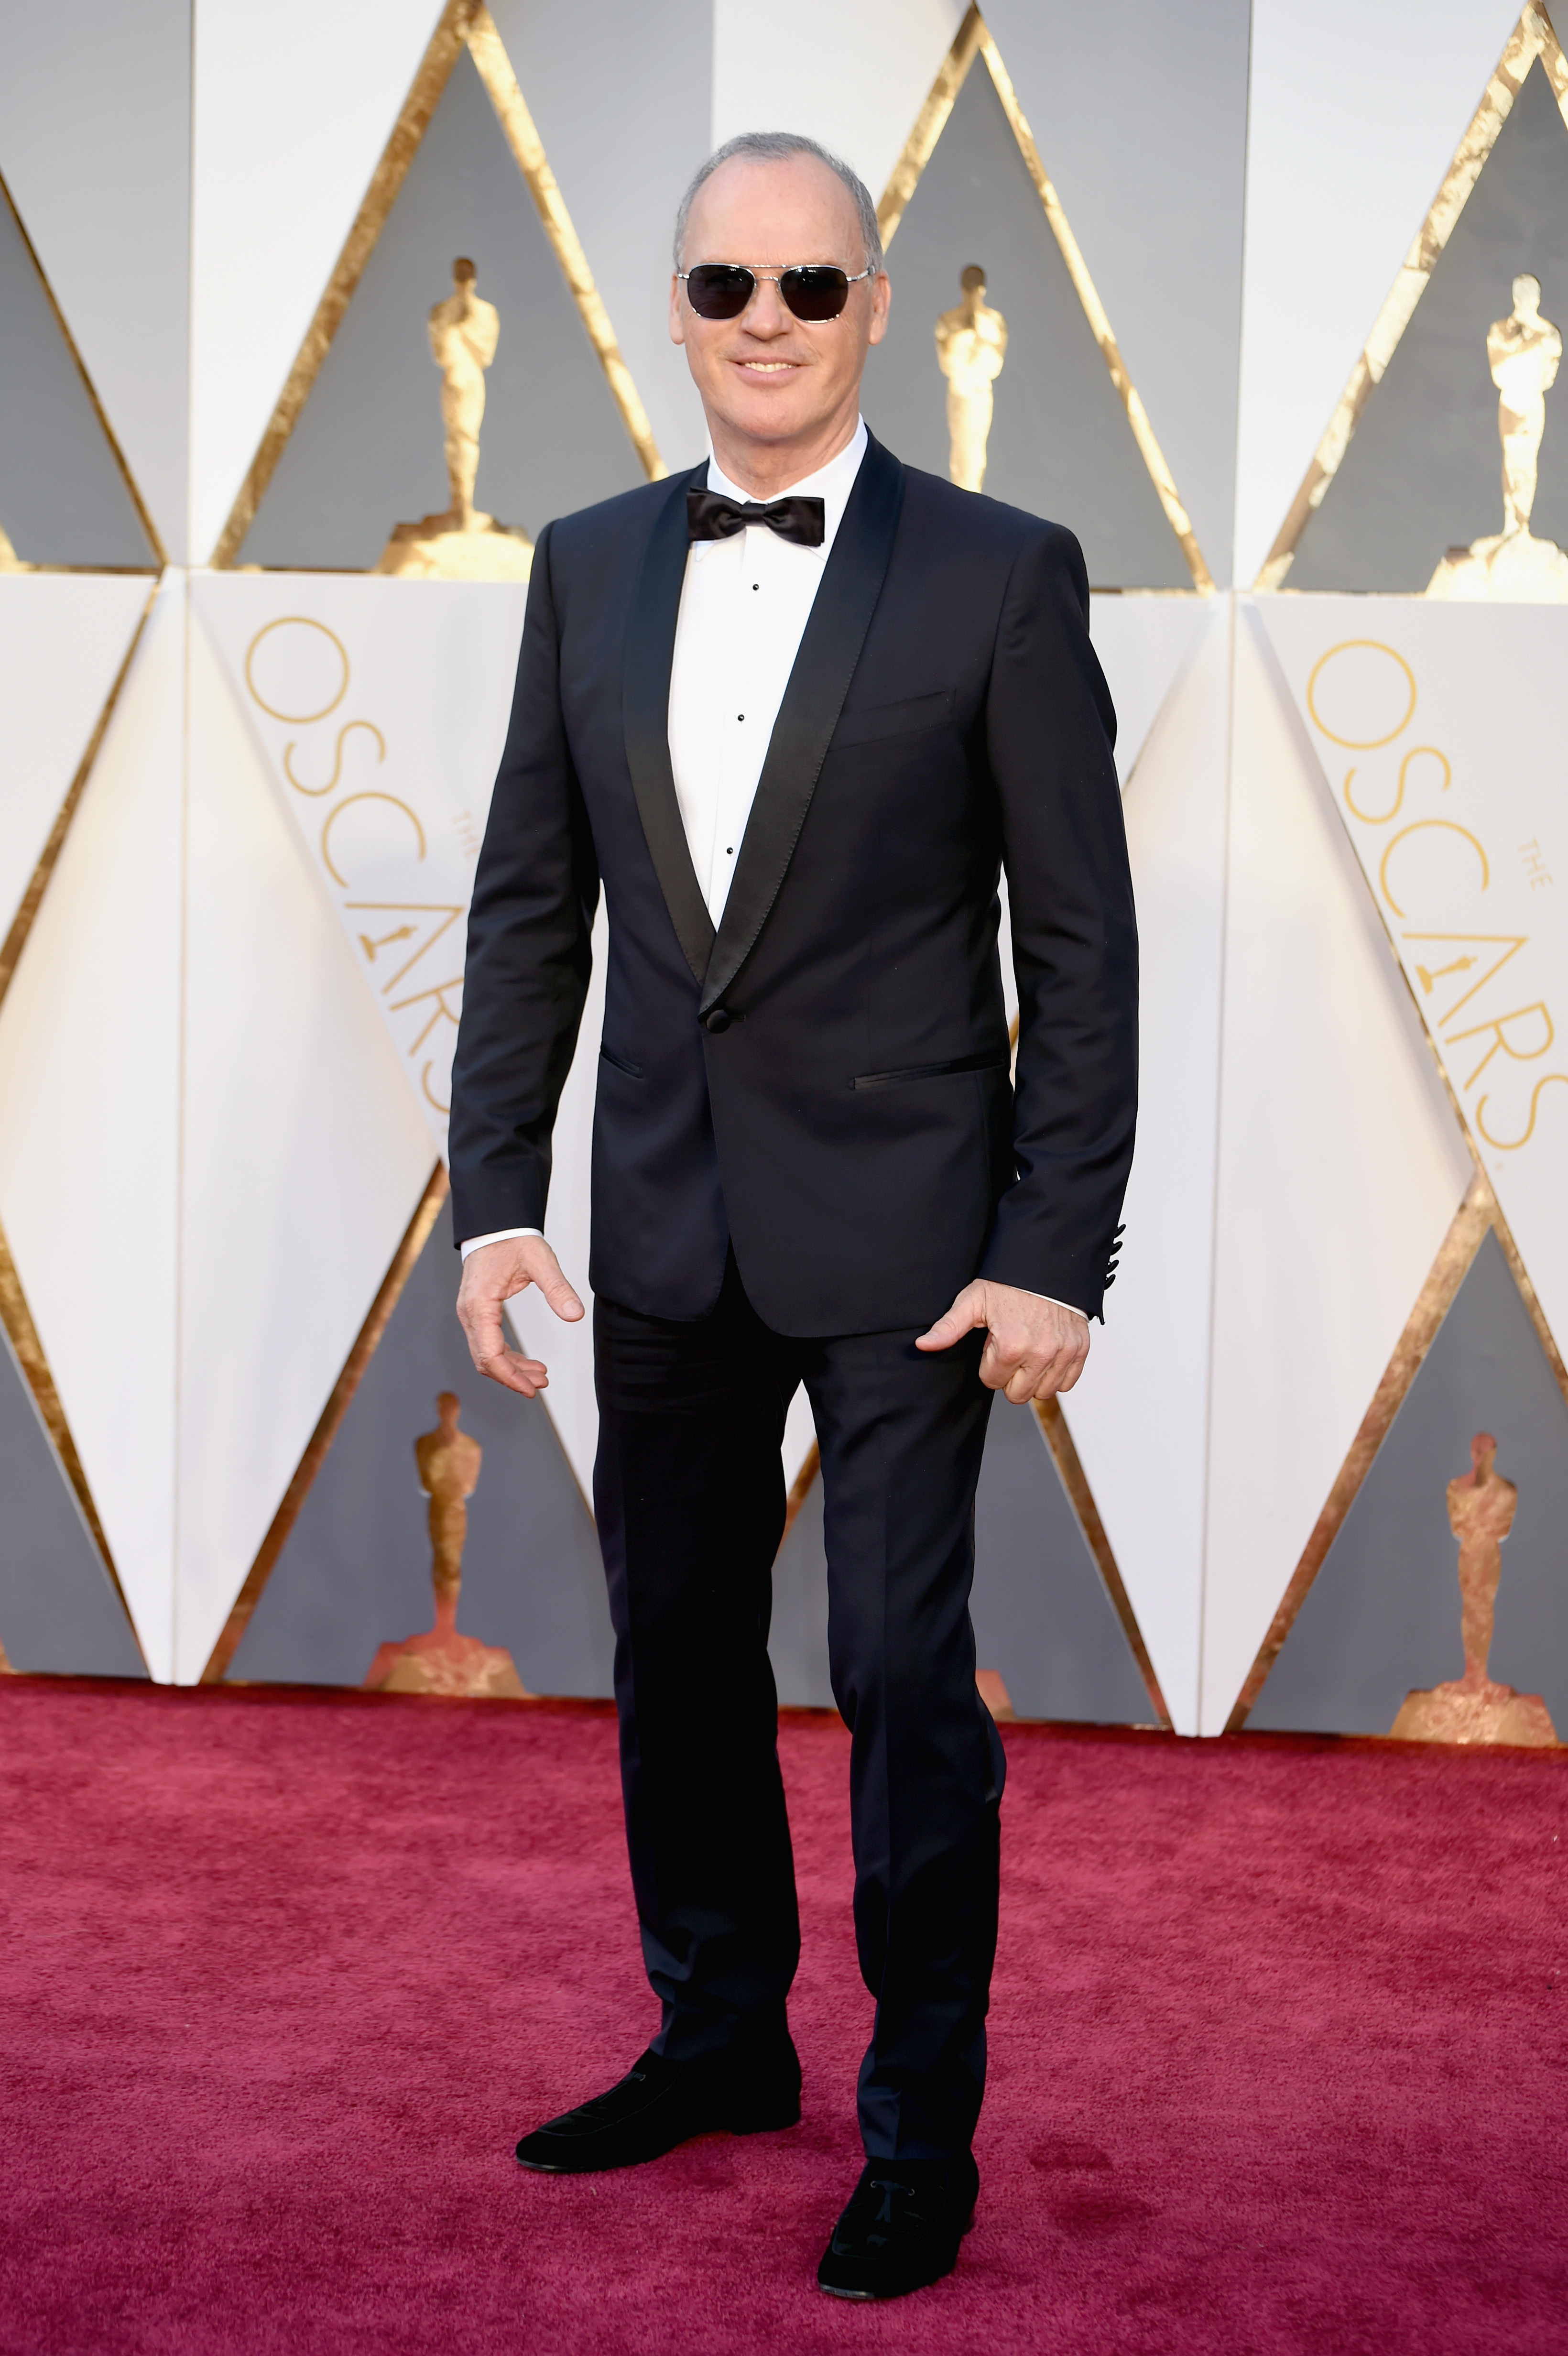 Michael Keaton attends the 88th Annual Academy Awards on Feb. 28, 2016 in Hollywood, Calif.